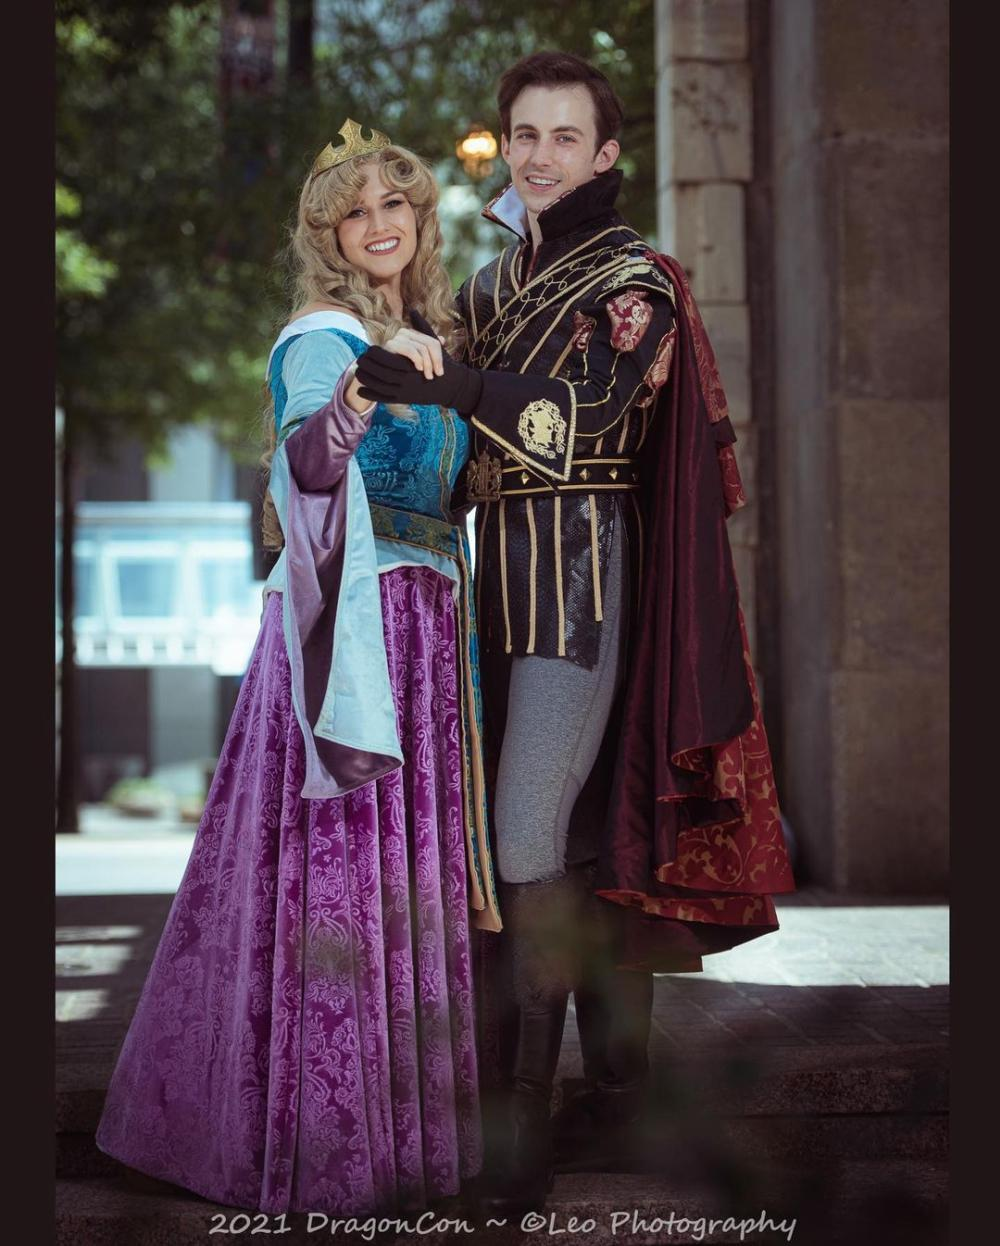 Sleeping beauty and prince phillip couple costumes